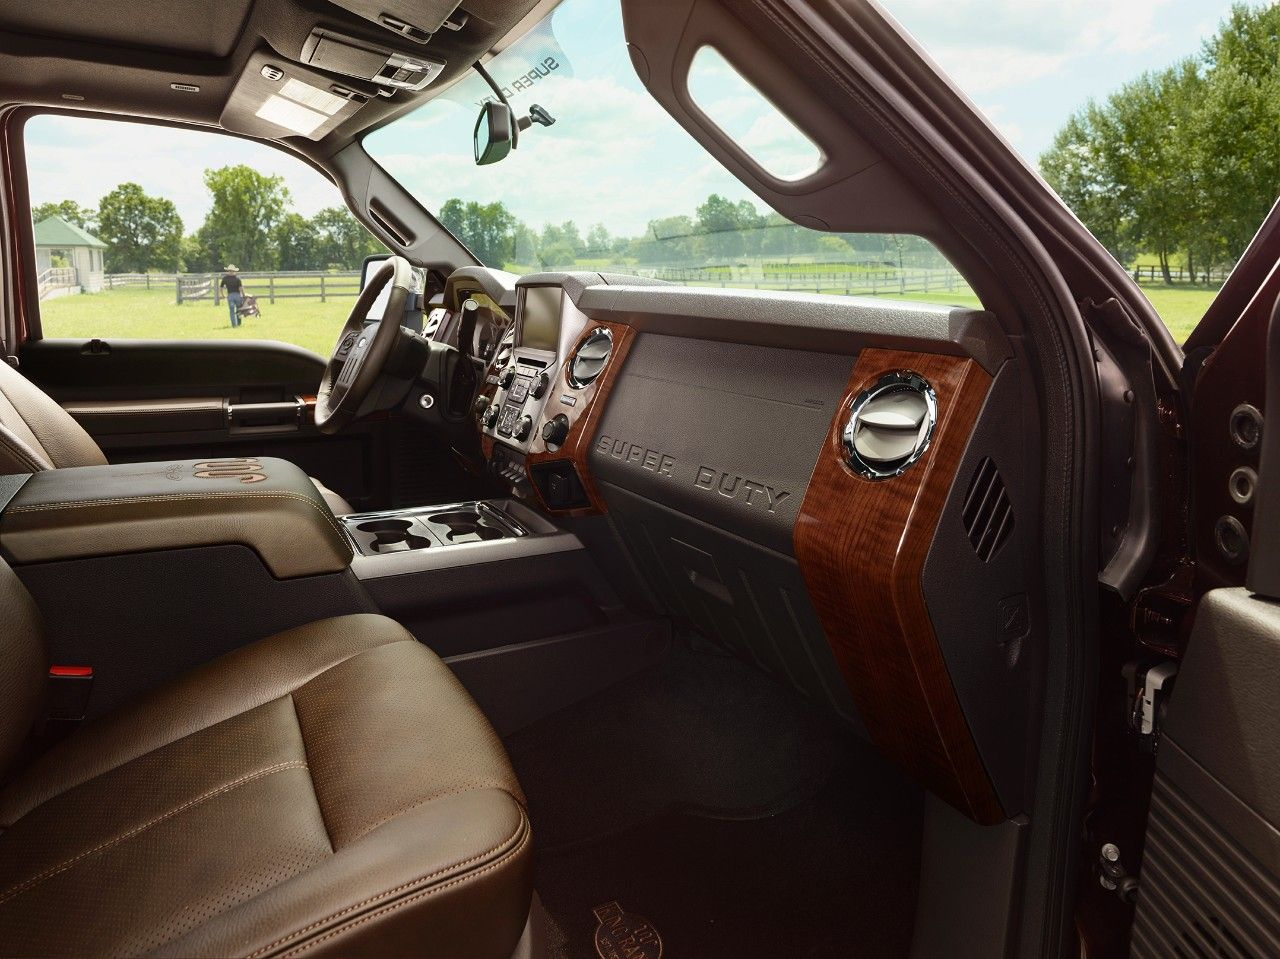 2015 King Ranch F350 Diesel Ford Unveils F 450 Hi2004 F150new Body My Power Window Is Not Working Super Duty With More Powerful 67l